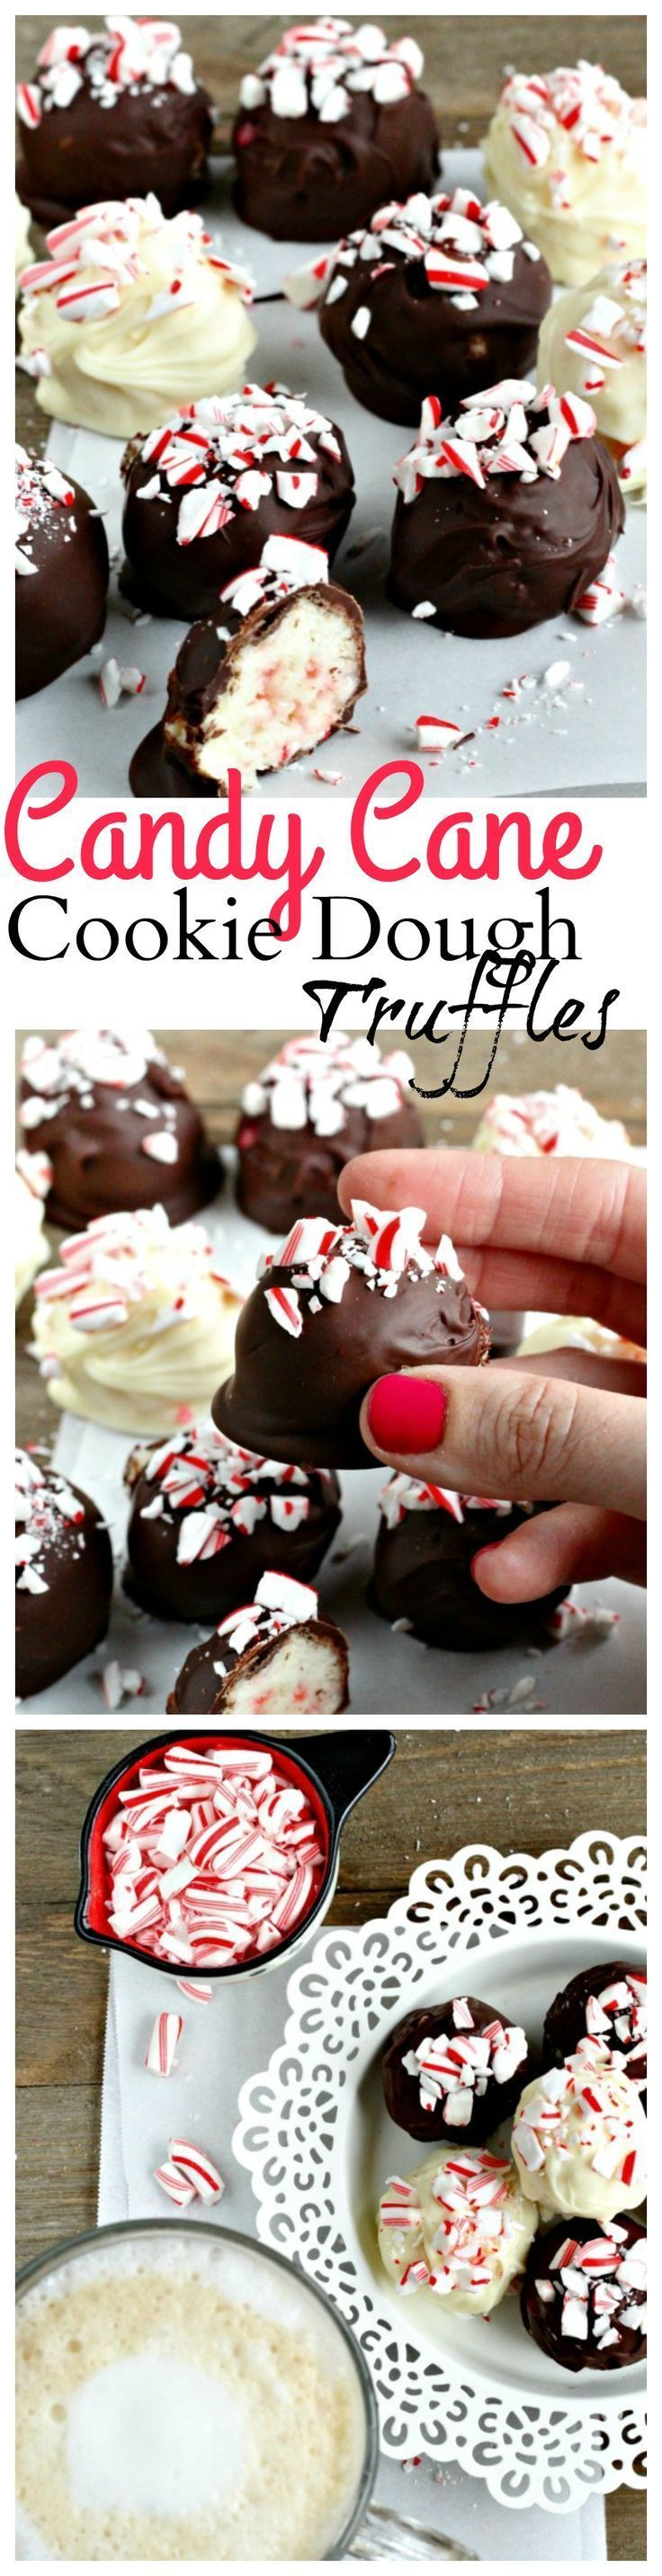 Candy cane cookie truffles are a perfectly festive holiday treat! Easy to make with white cake mix & candy cane pieces.